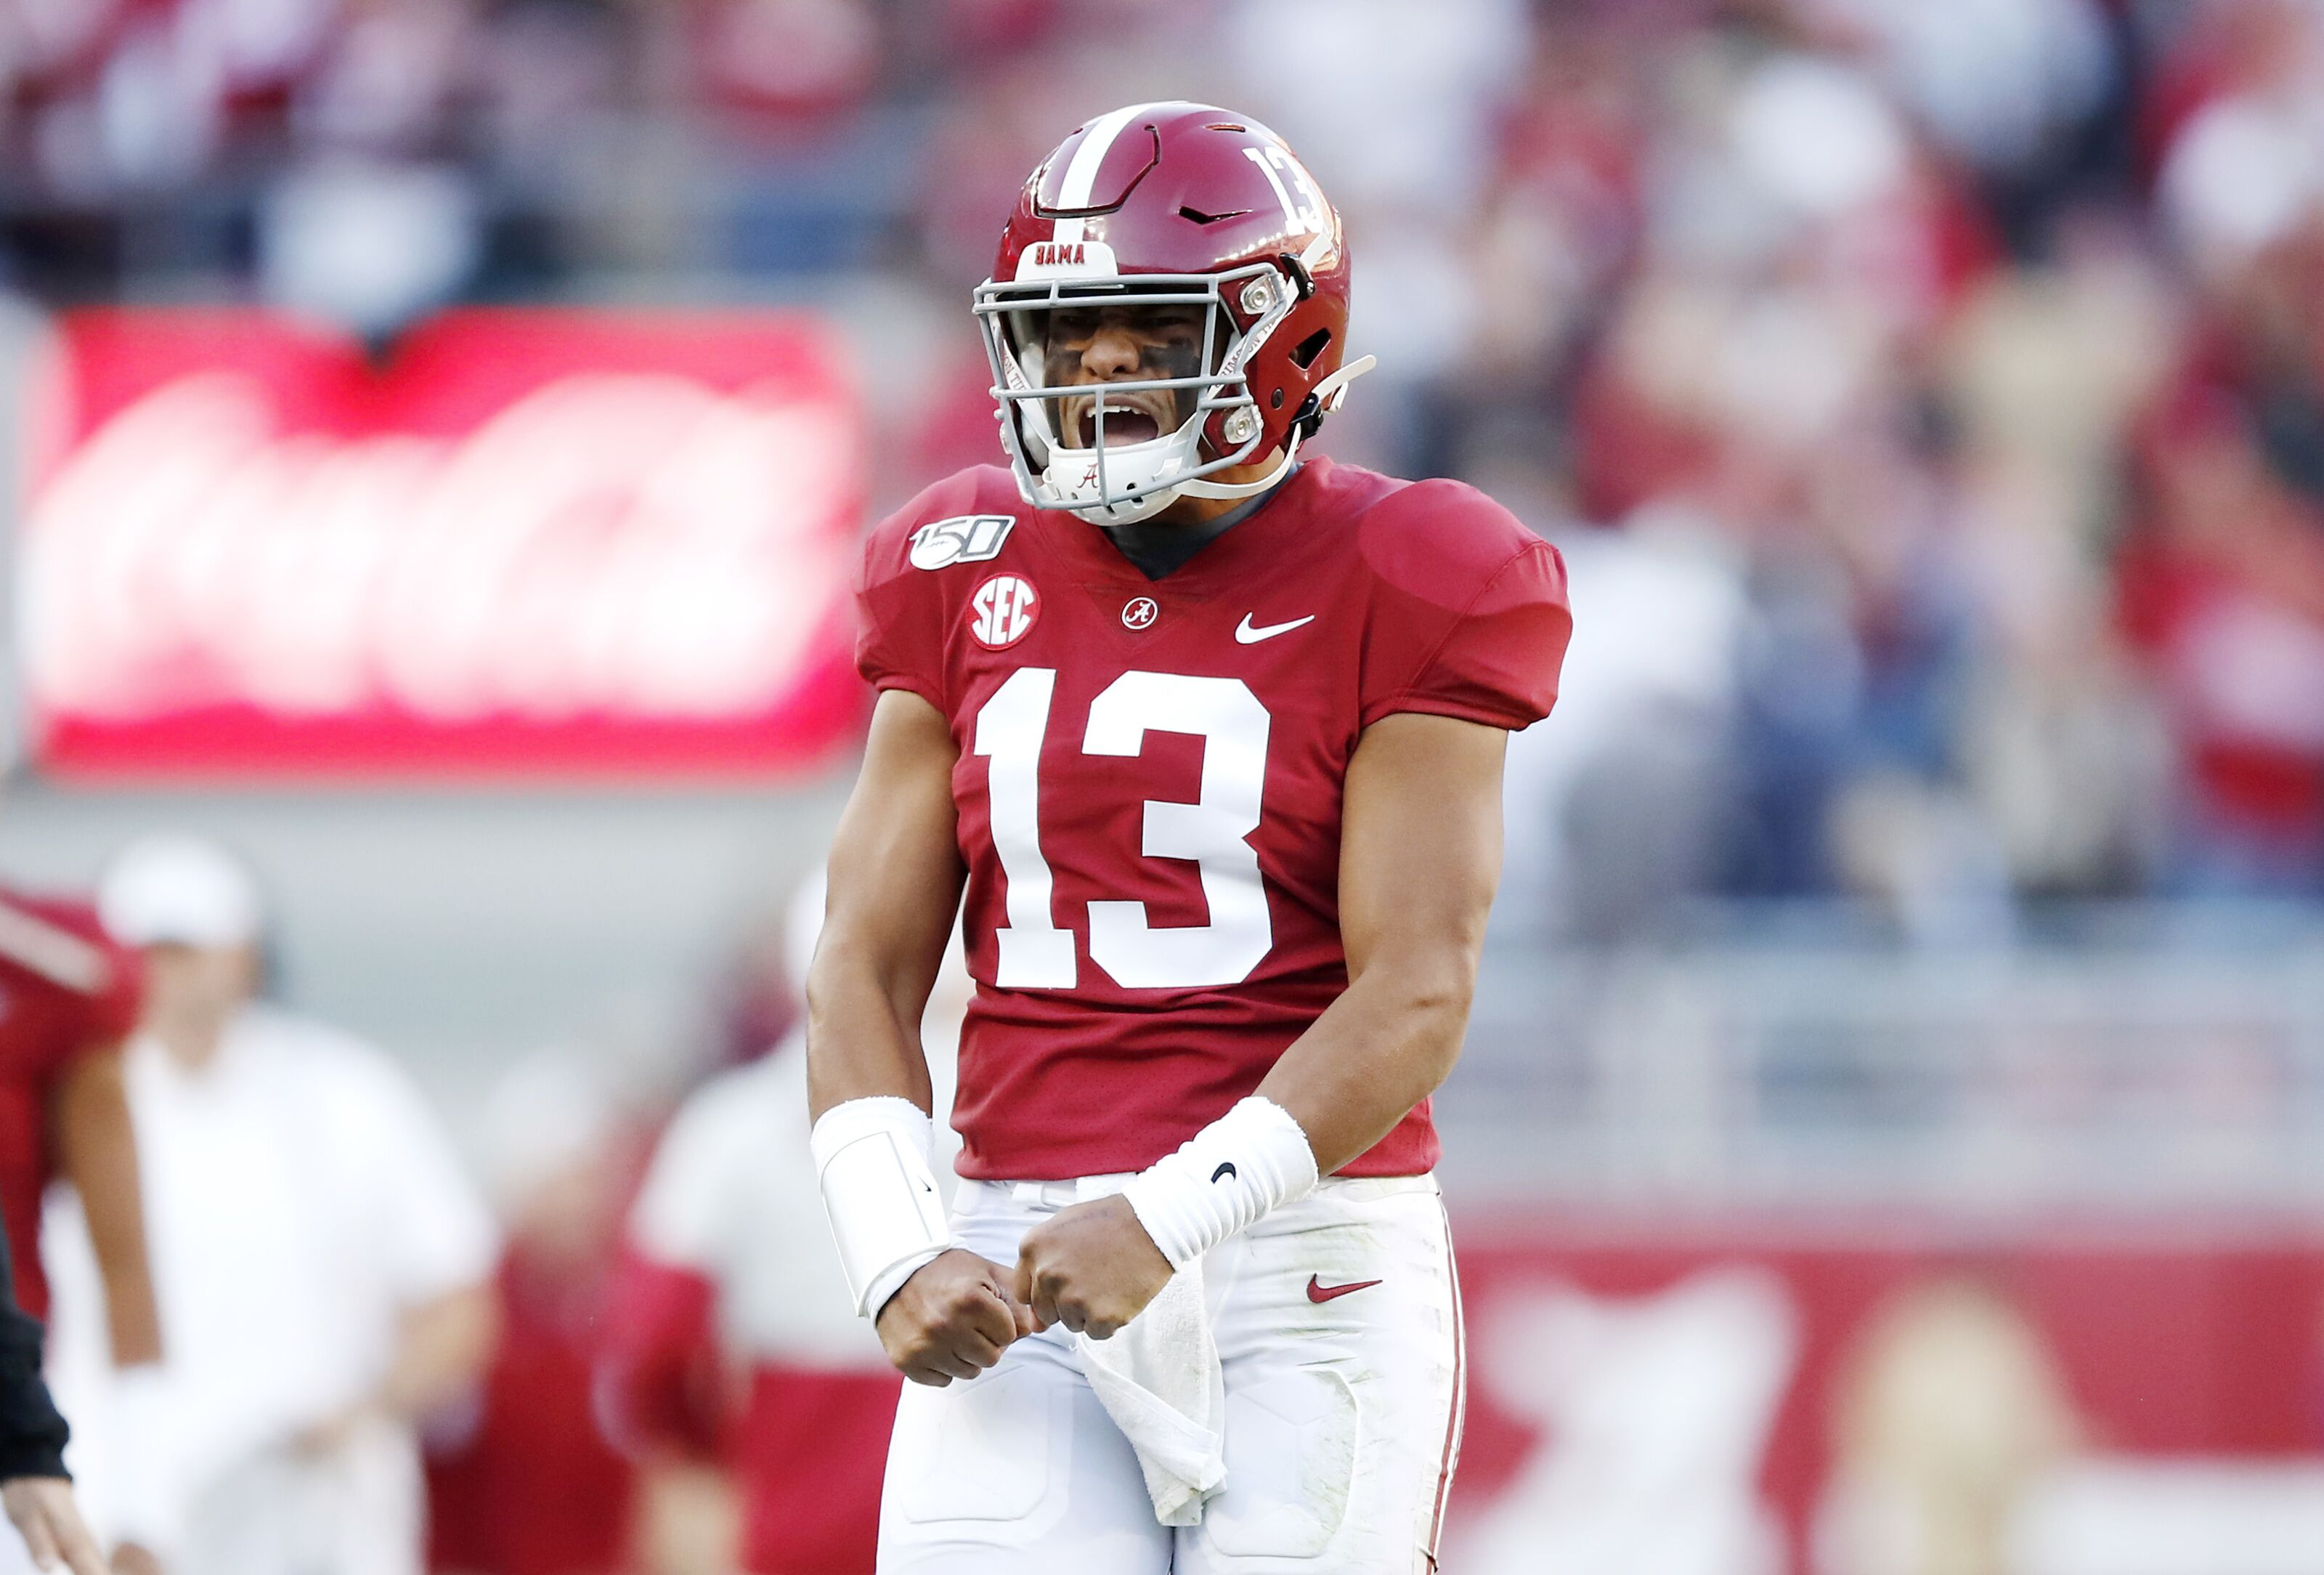 2020 NFL Draft: Tua goes early in Senior Bowl day 3-round mock